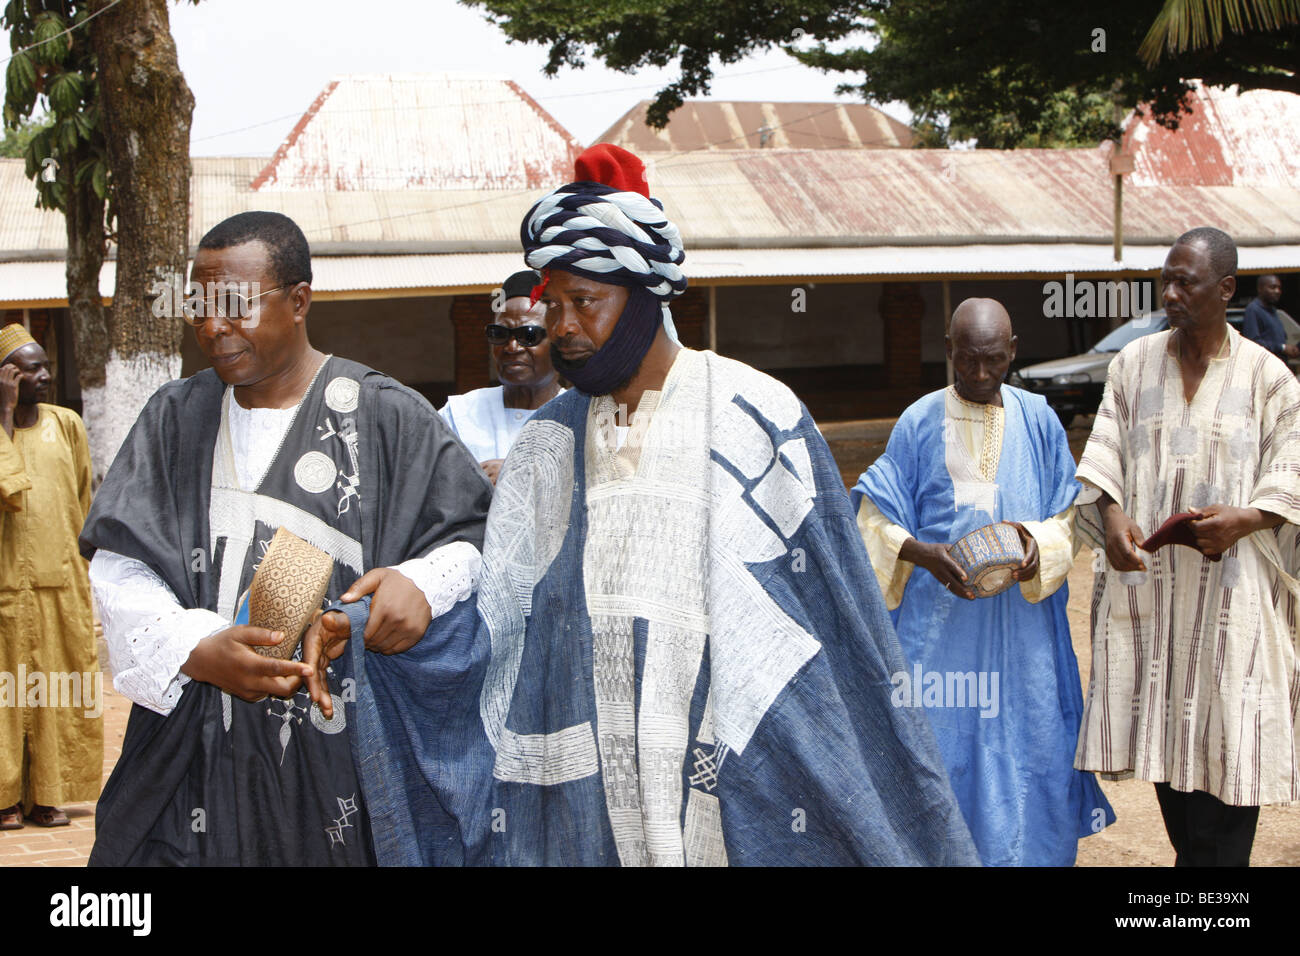 Selected man may approach the Sultan, Sultan's palace, audience with the Sultan, Foumban, Cameroon, Africa - Stock Image